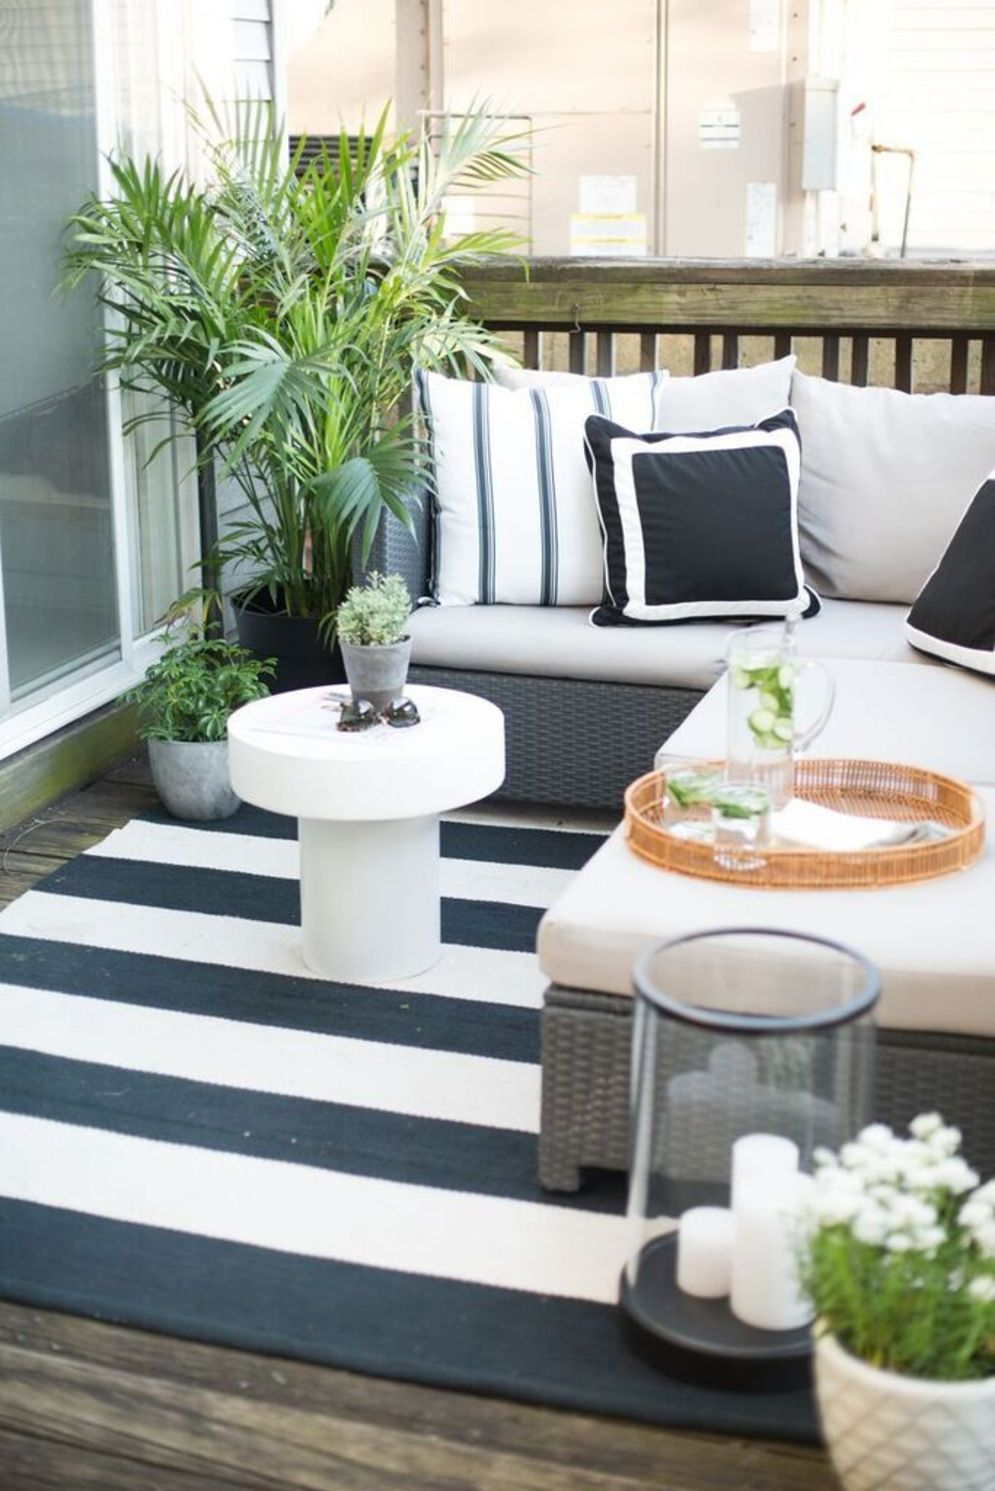 Brilliant apartment balcony ideas converted into cozy living space Image 7